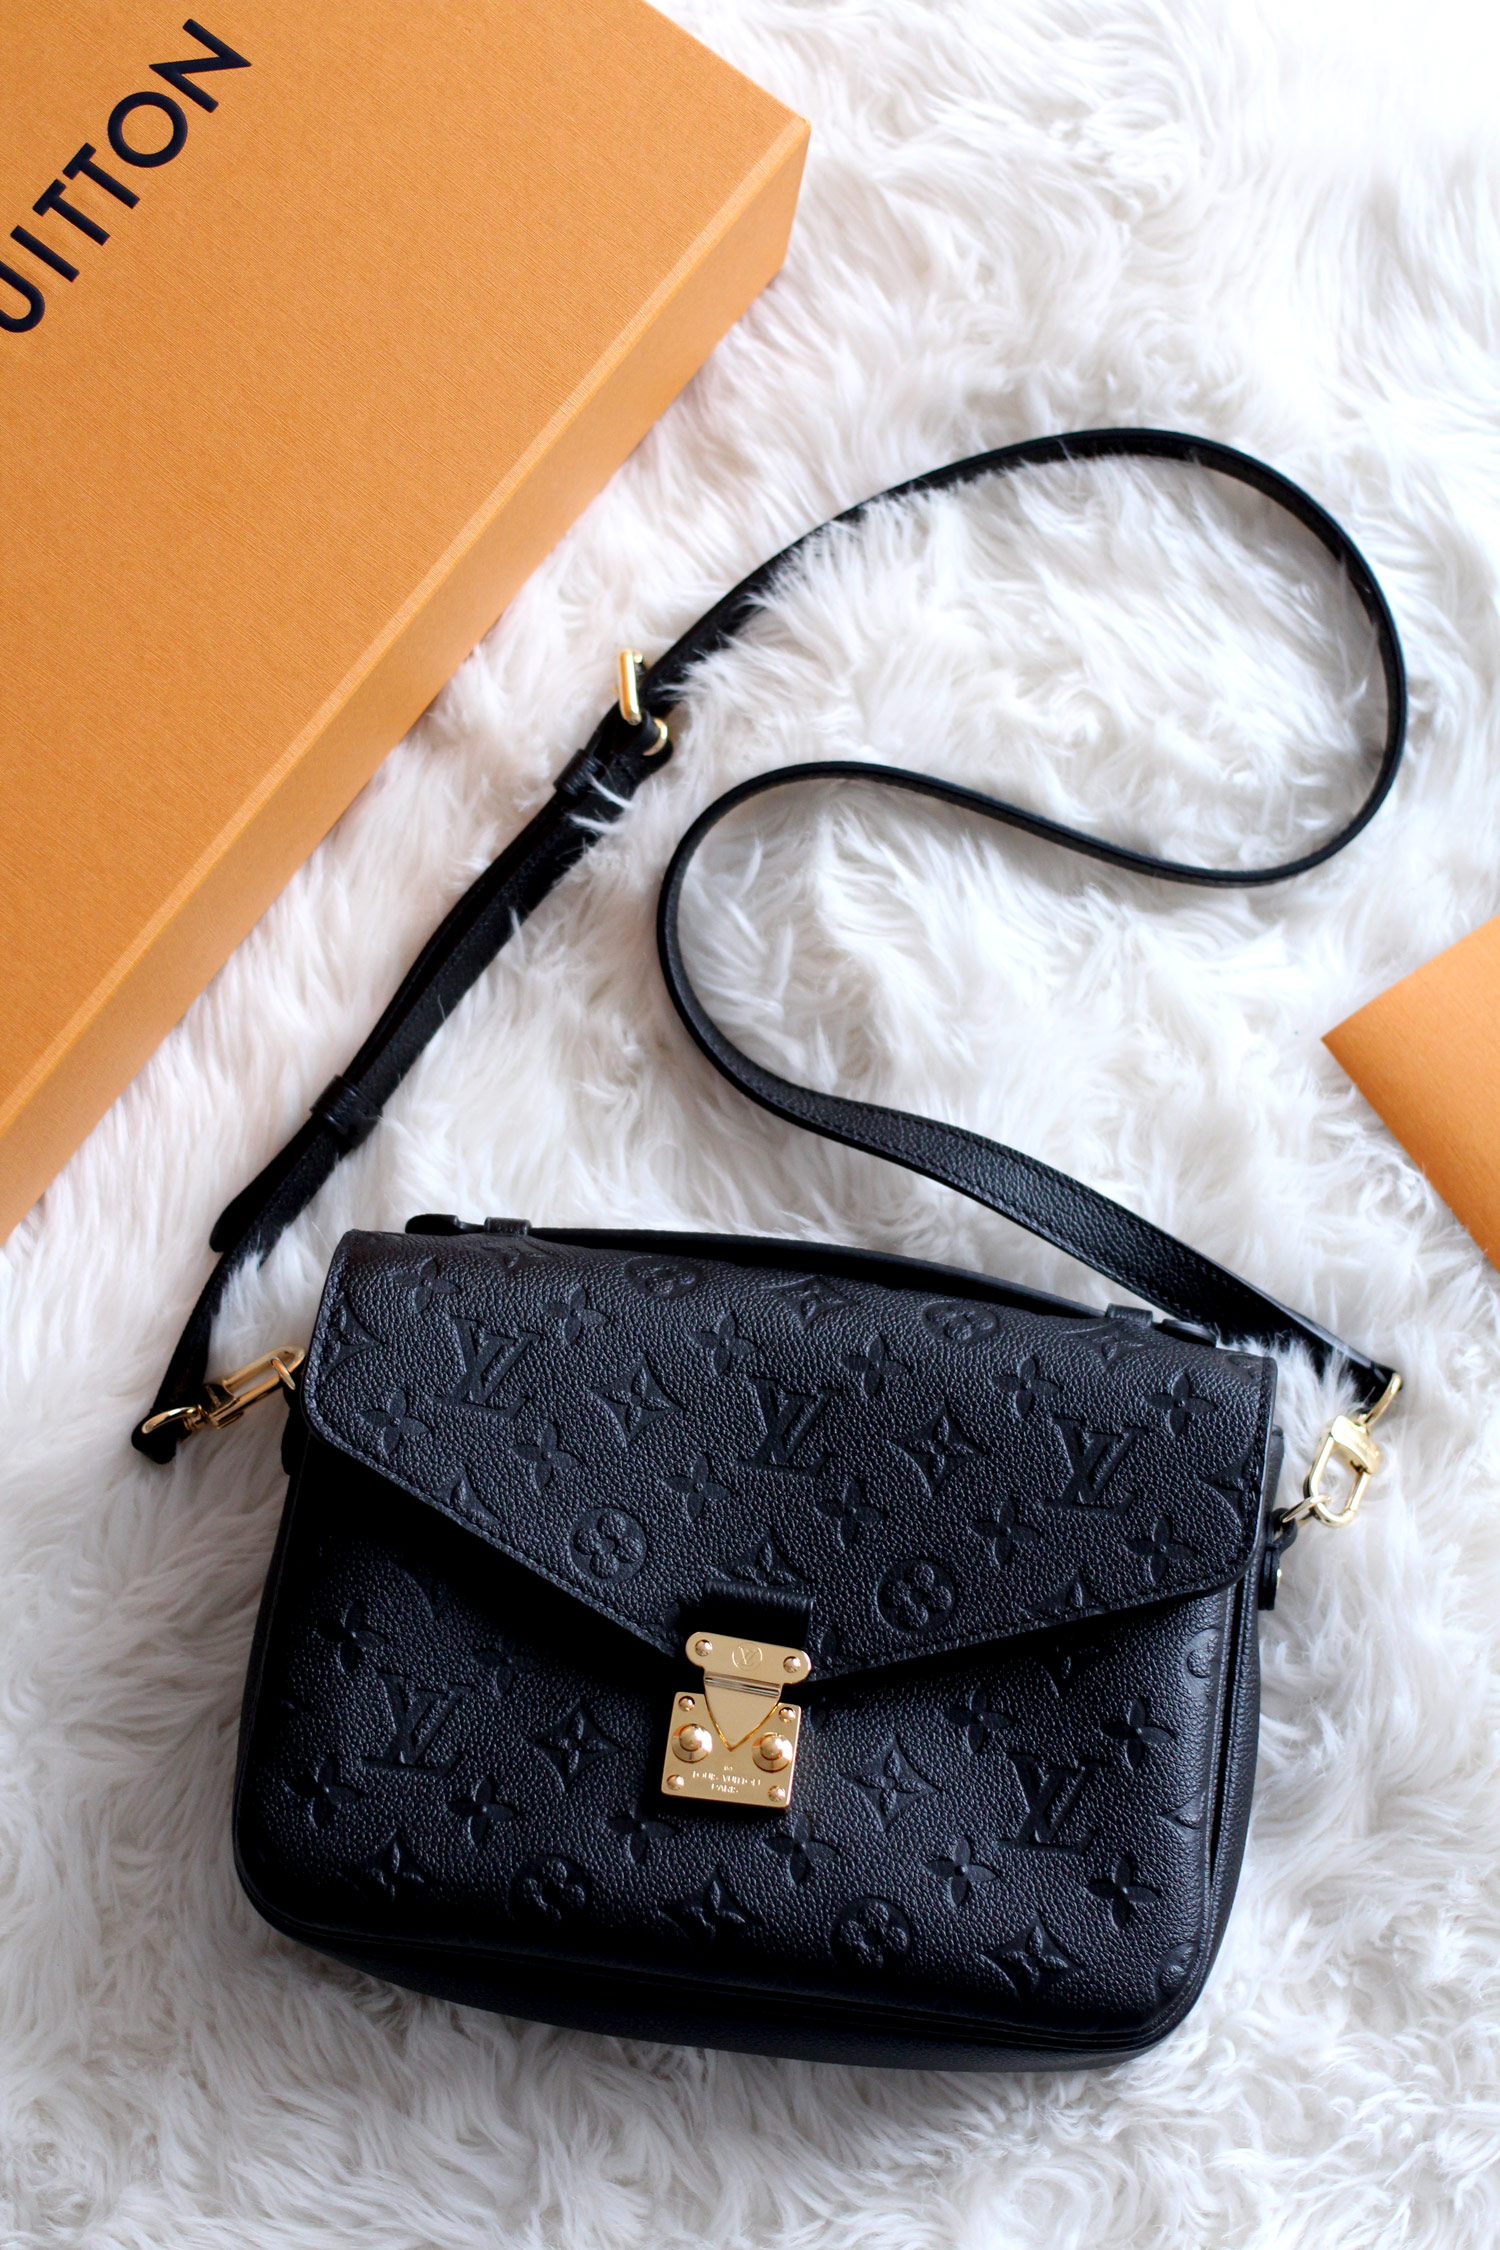 louis-vuitton-pochette-metis-Monogram-Empreinte-Leather-black-bag-review-7